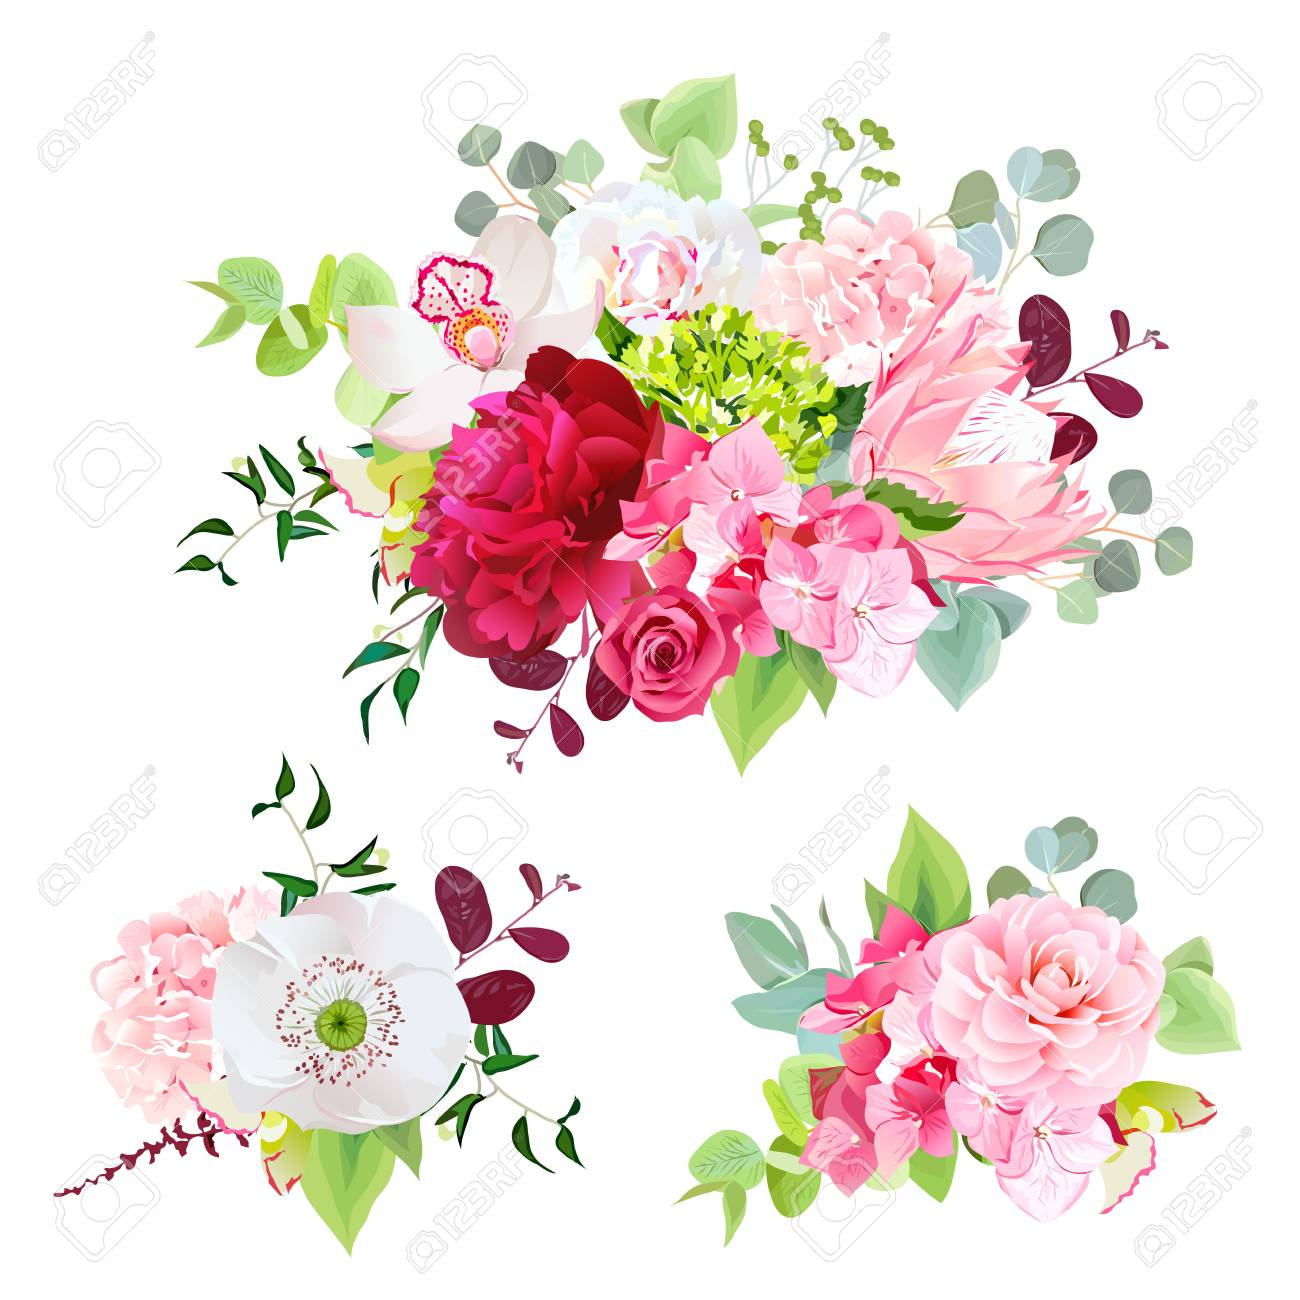 Summer Mixed Bouquets Of Flowers And Leaves Royalty Free Cliparts ...